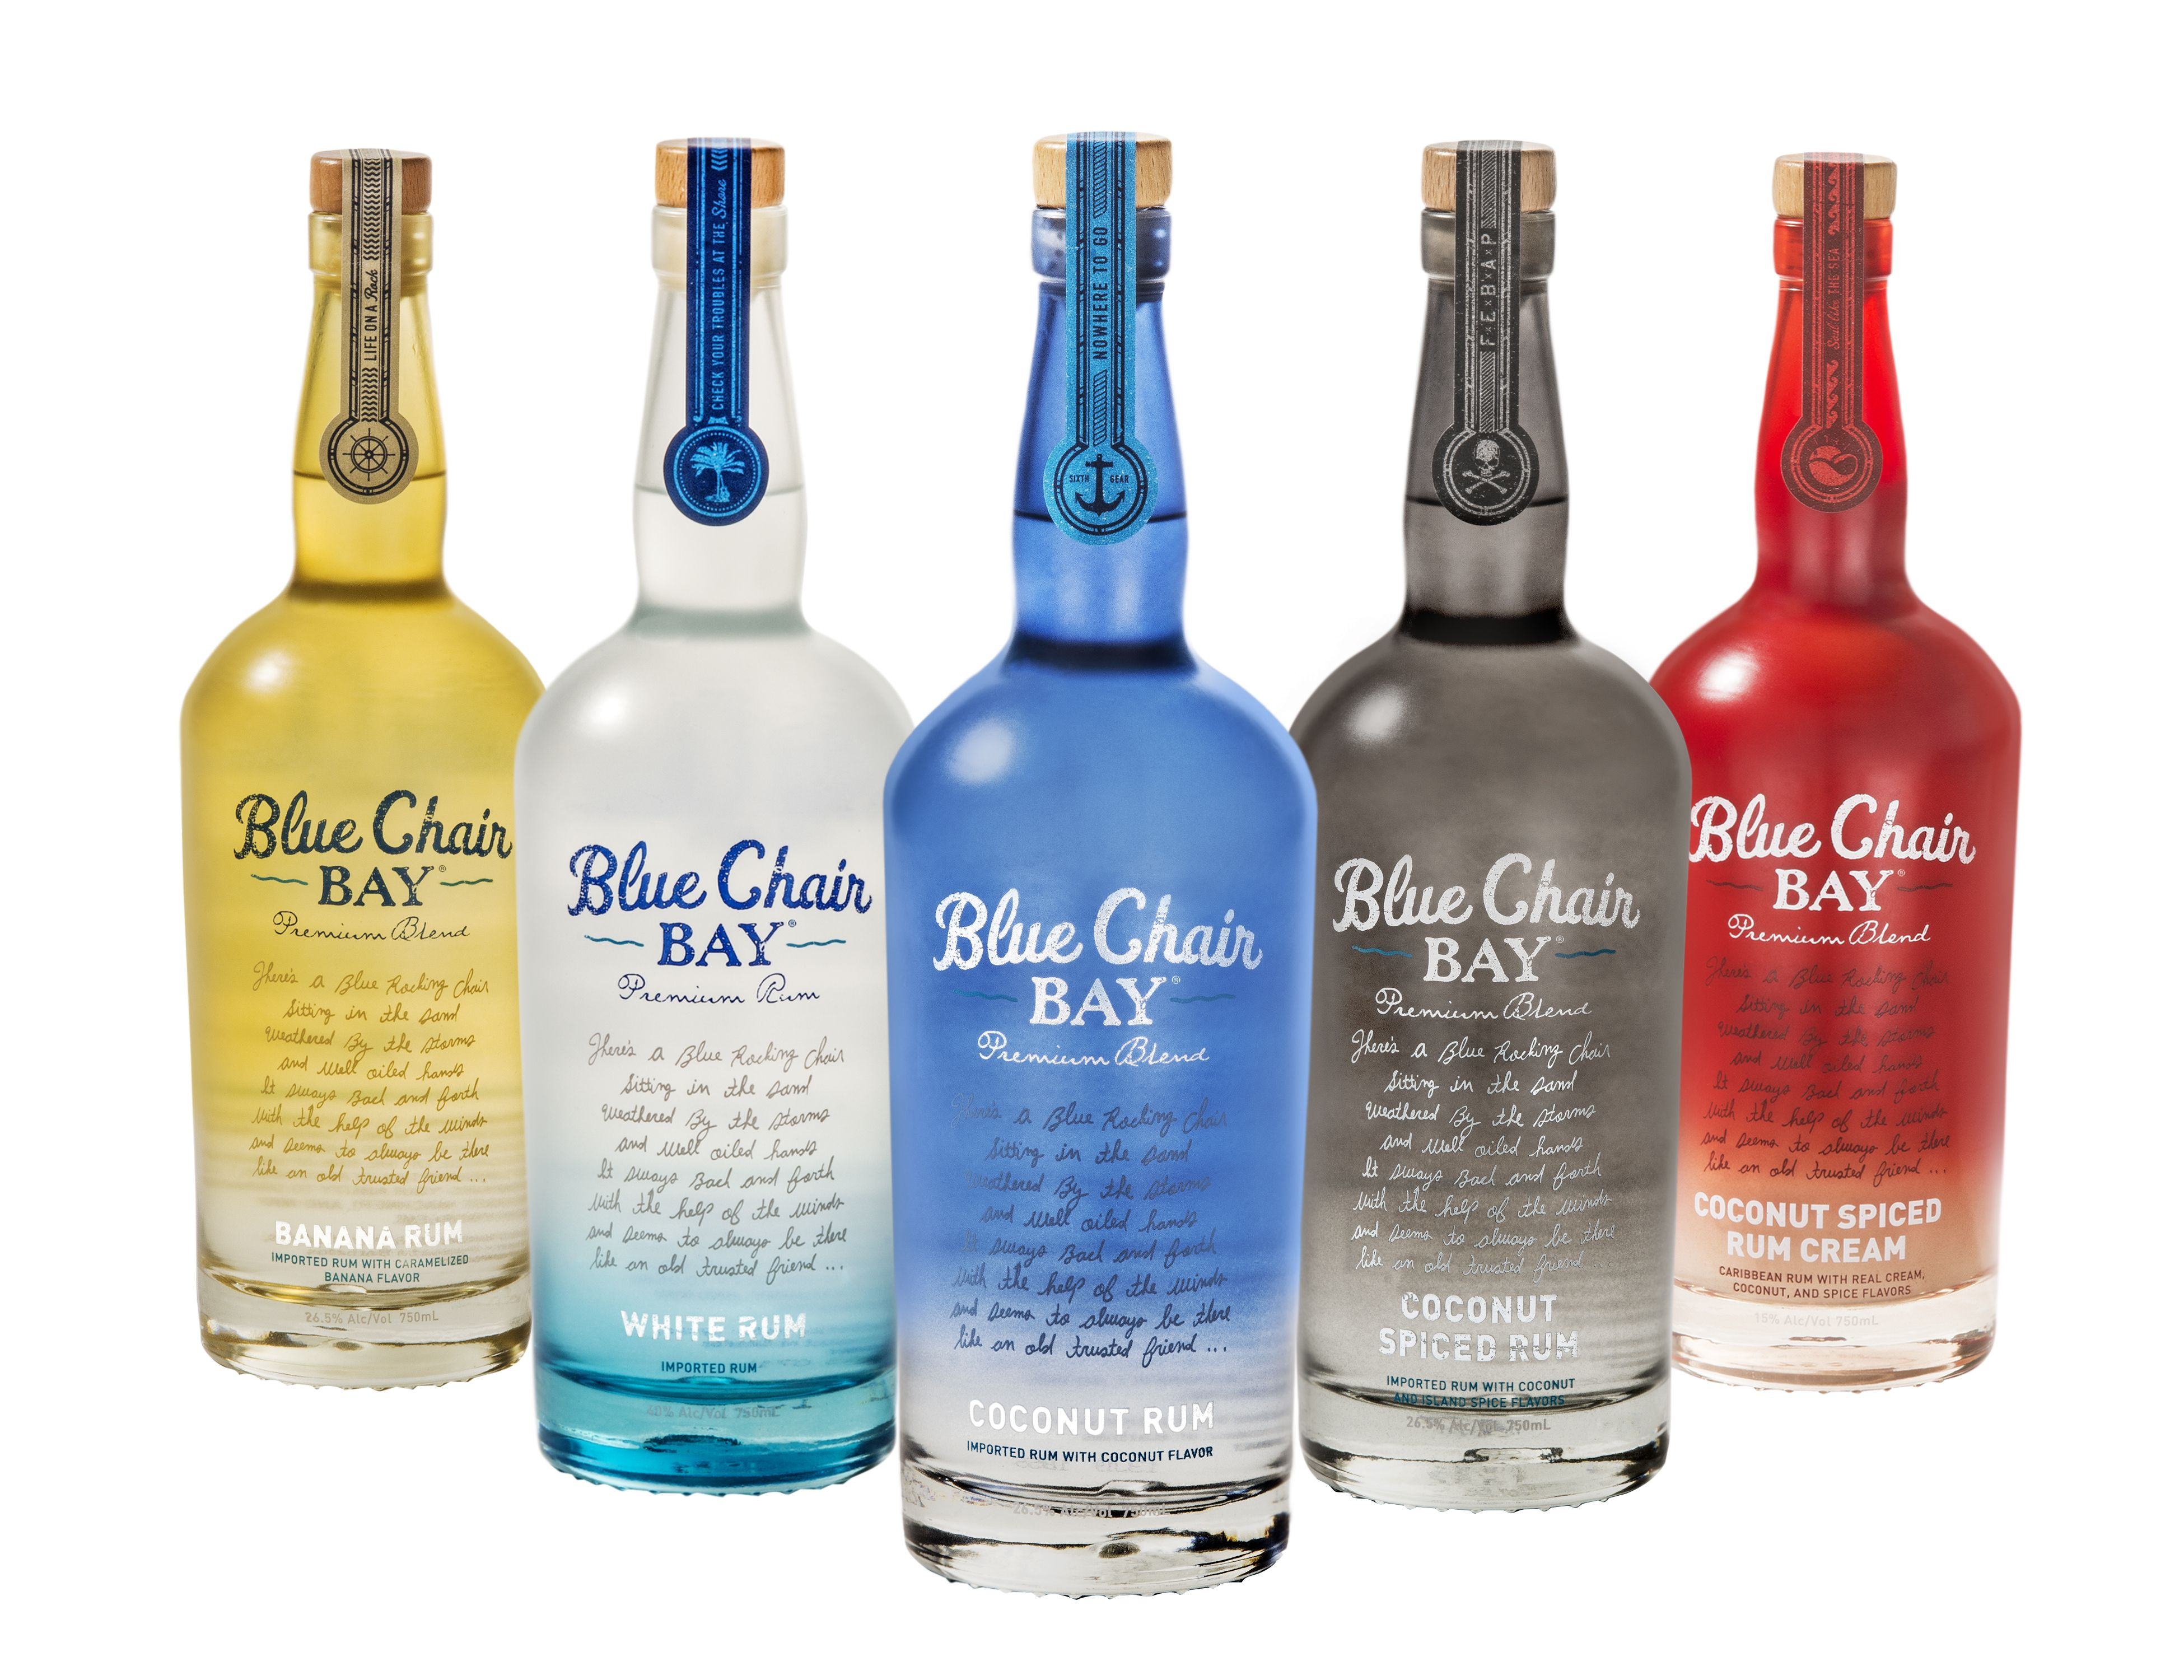 Blue Chair Bay Rum Appoints New President Rum, Bay rum